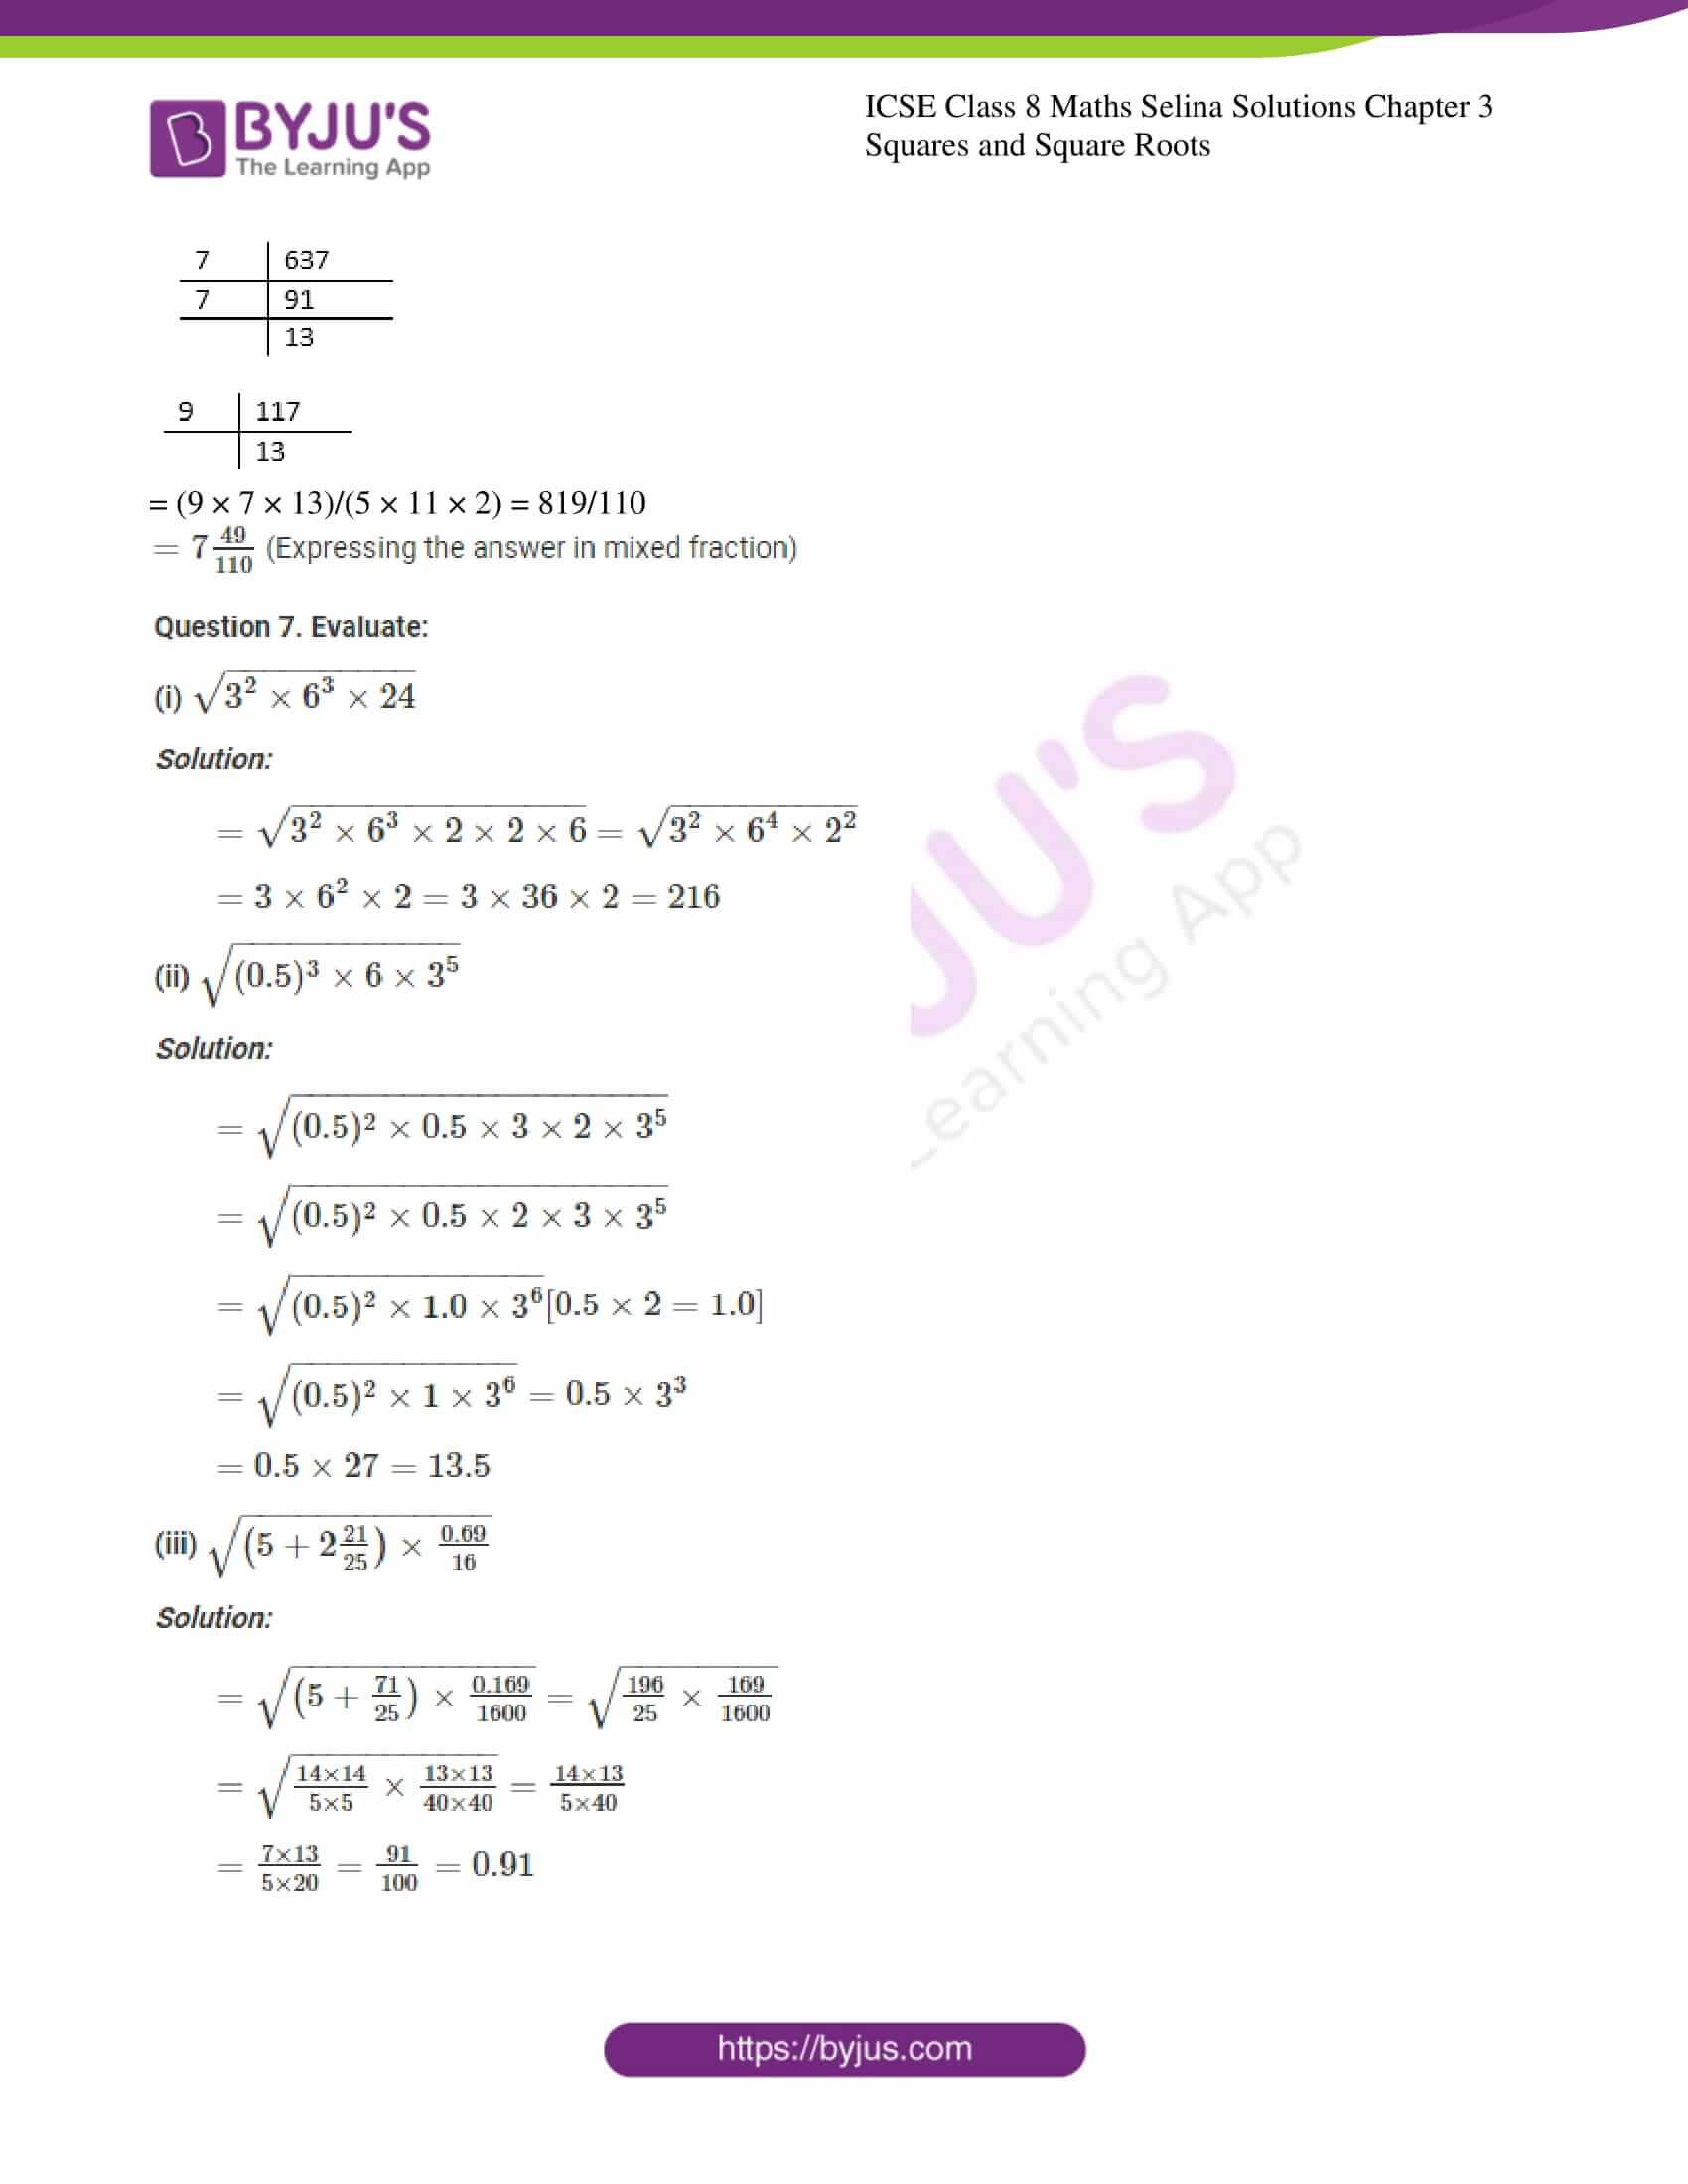 icse april7 class 8 maths selina solutions chapter 3 squares and square roots 05